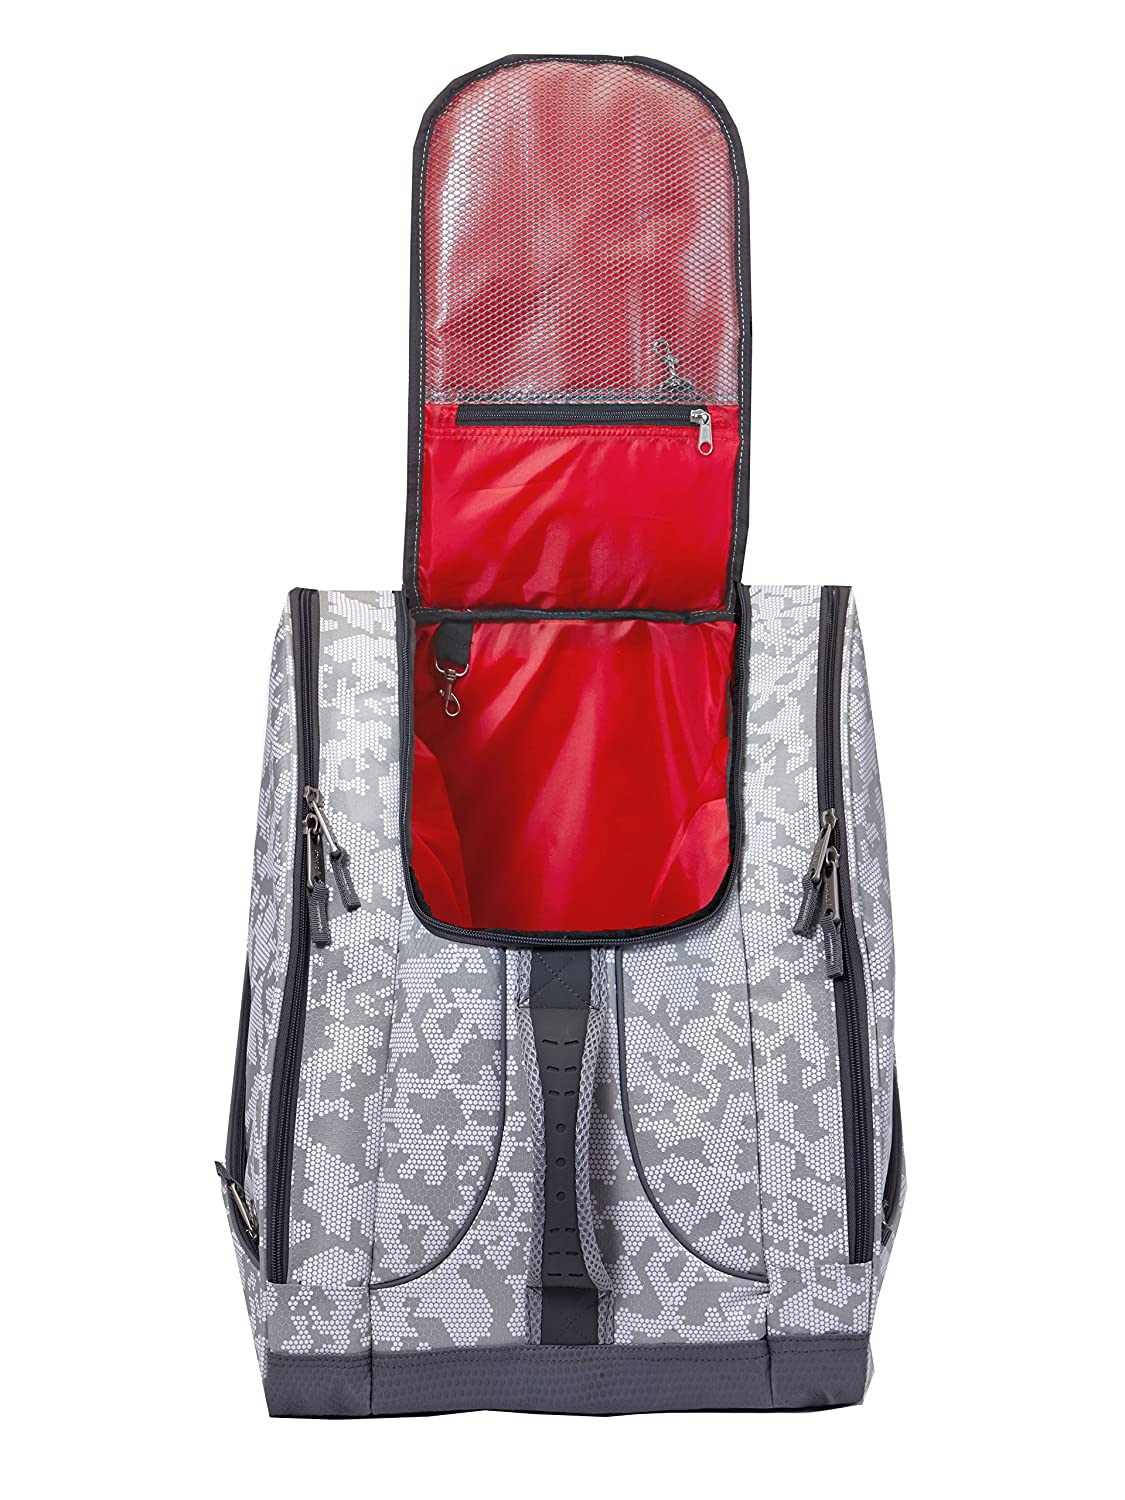 81eb487faa Athalon Everything Boot Pack Bag With Shoulder Straps Waterproof Travel Bag  Athalon Luggage 330-B